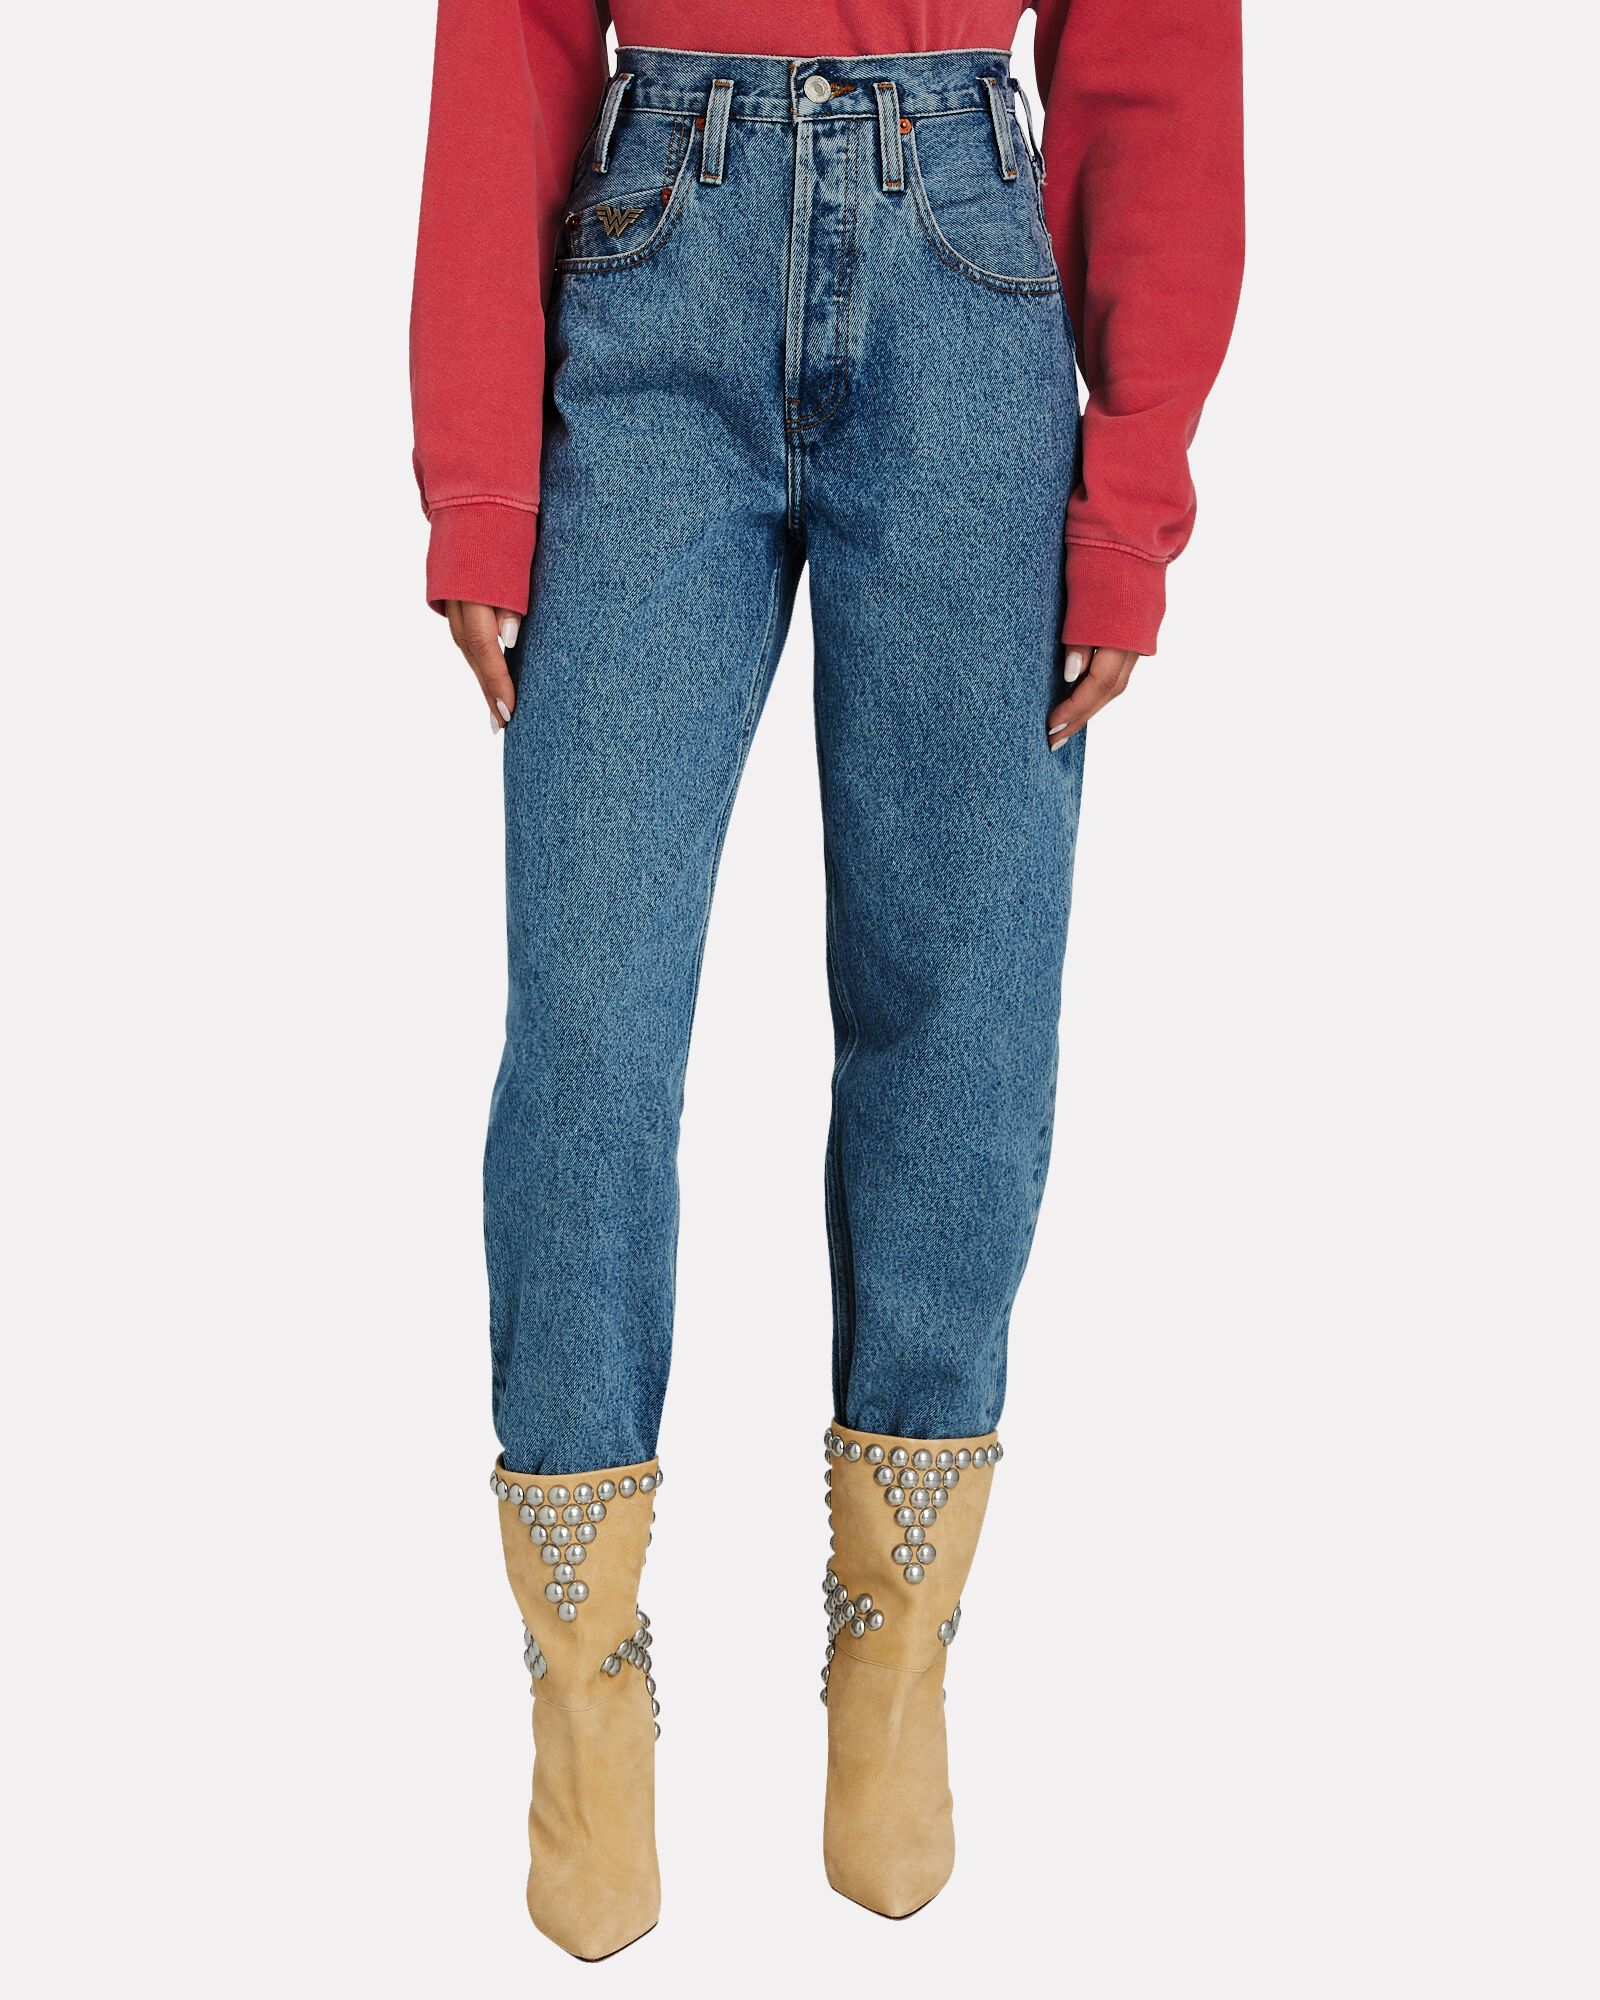 80s Peg Leg Jeans, DENIM, hi-res